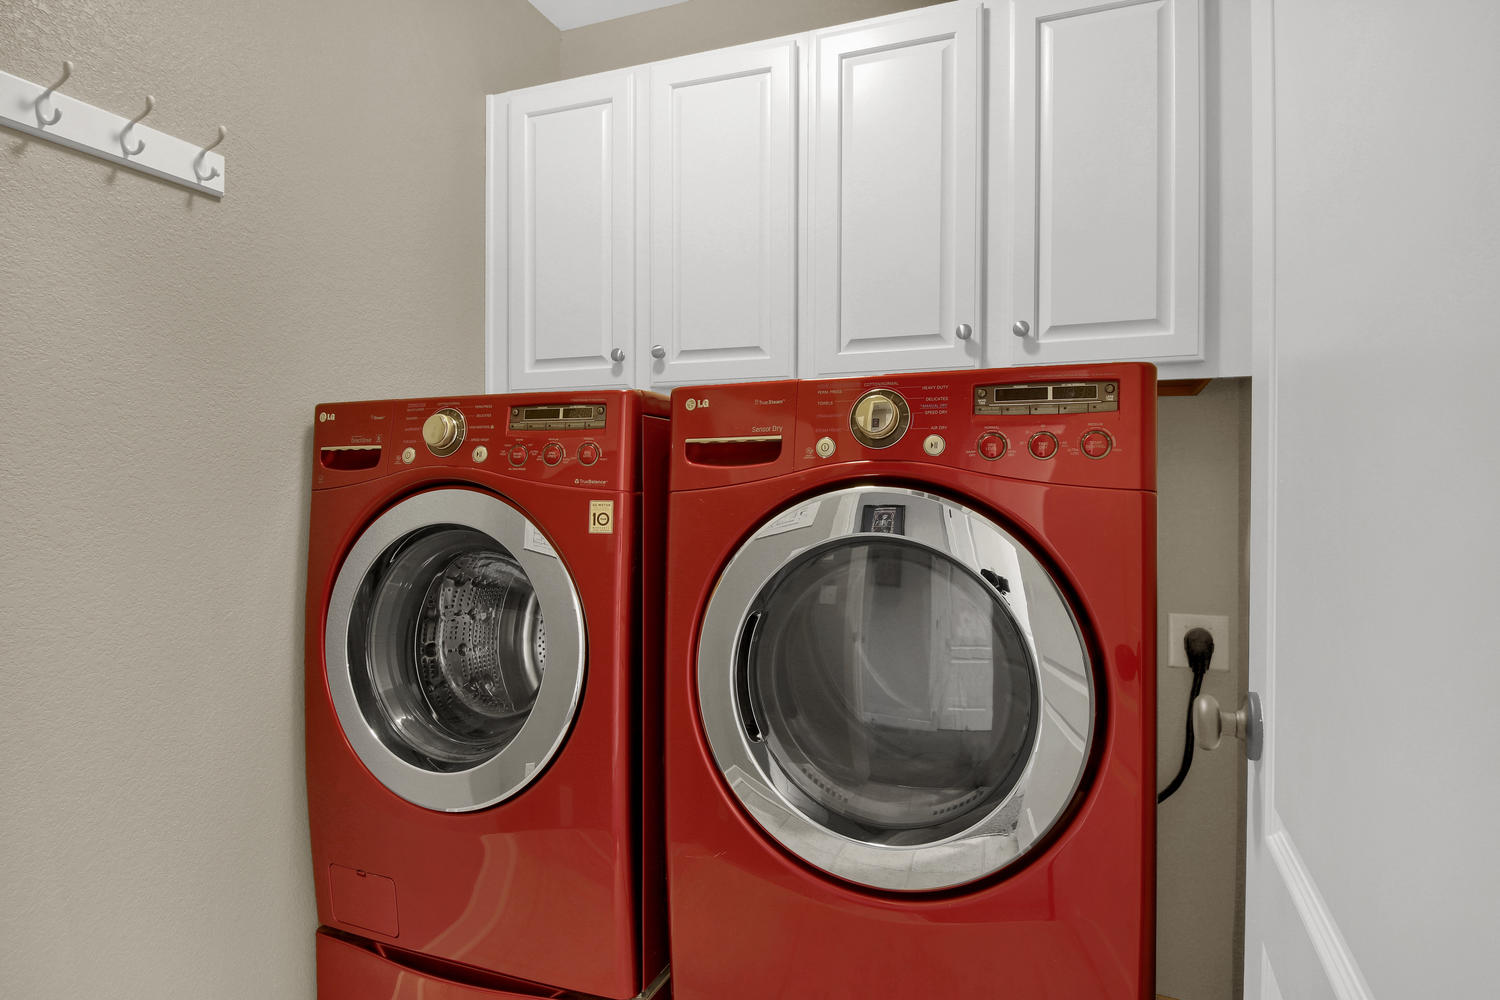 tenant washer / dryer